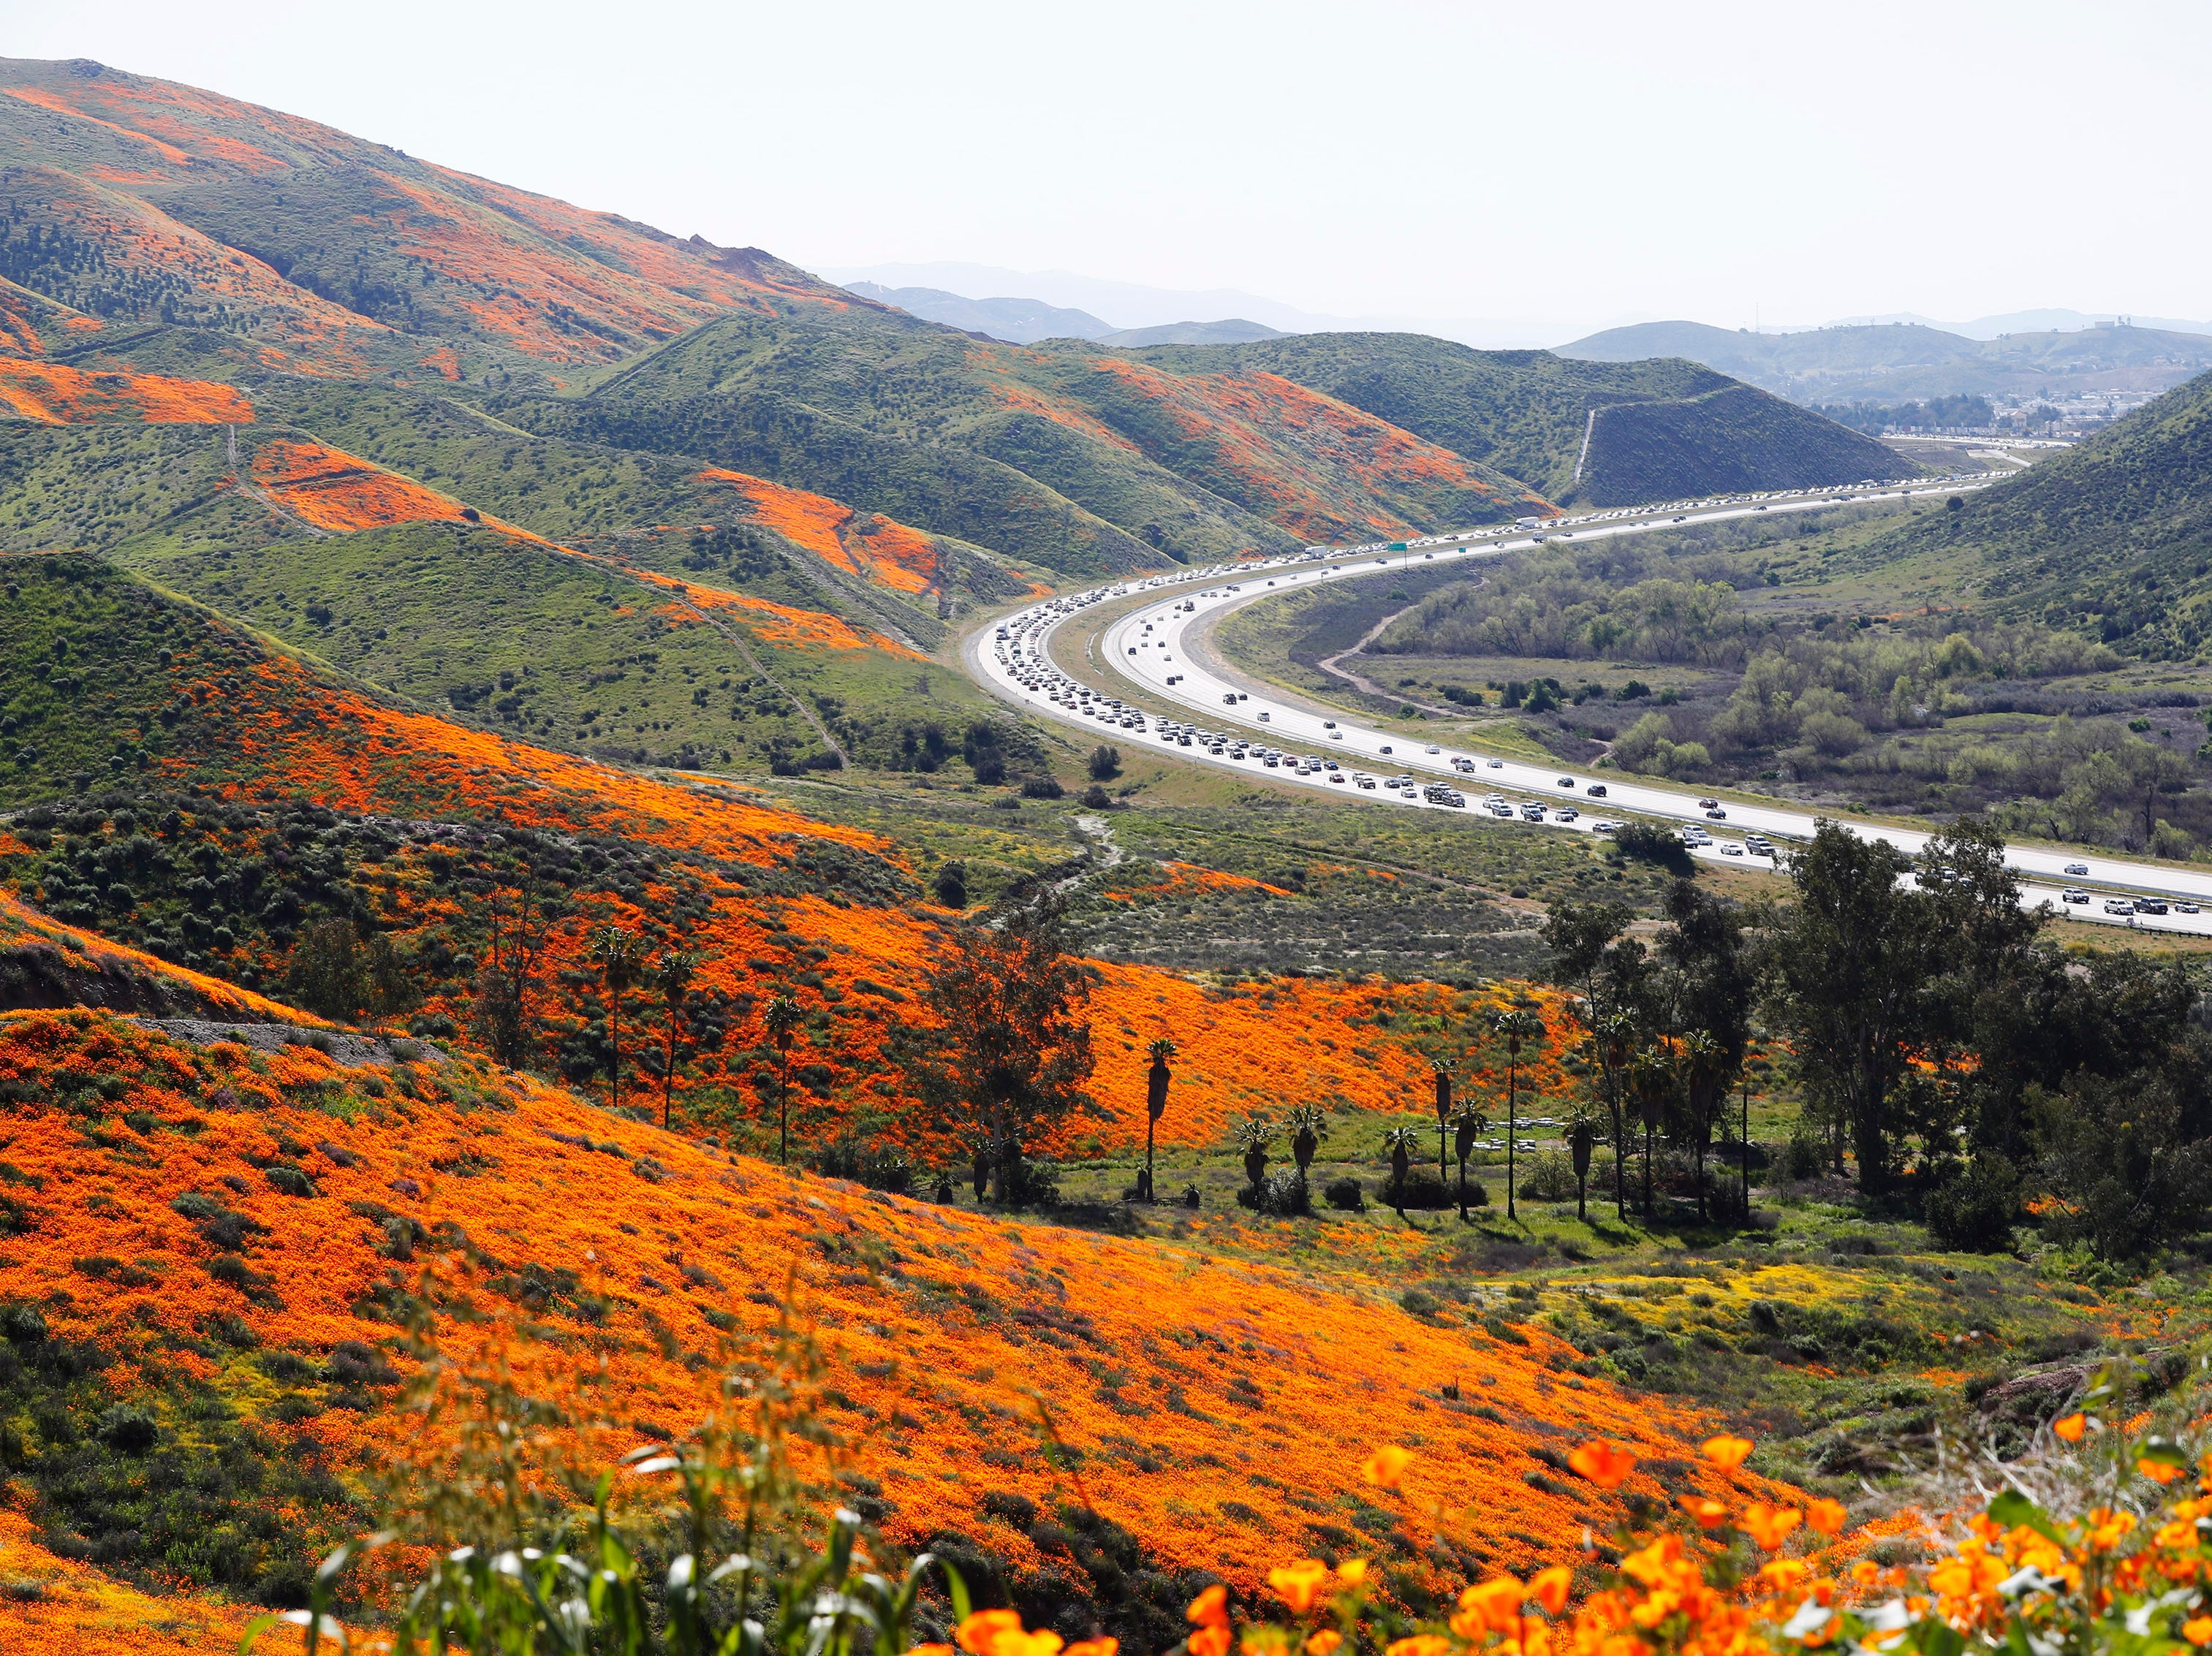 Cars are backed up on I-15 at Walker Canyon in Lake Elsinore, Calif. Sunday March 17, 2019. After massive crowds packed the small community to see the poppies, city officials have shut down Walker Canyon to the public. No shuttles or visitors will be allowed.